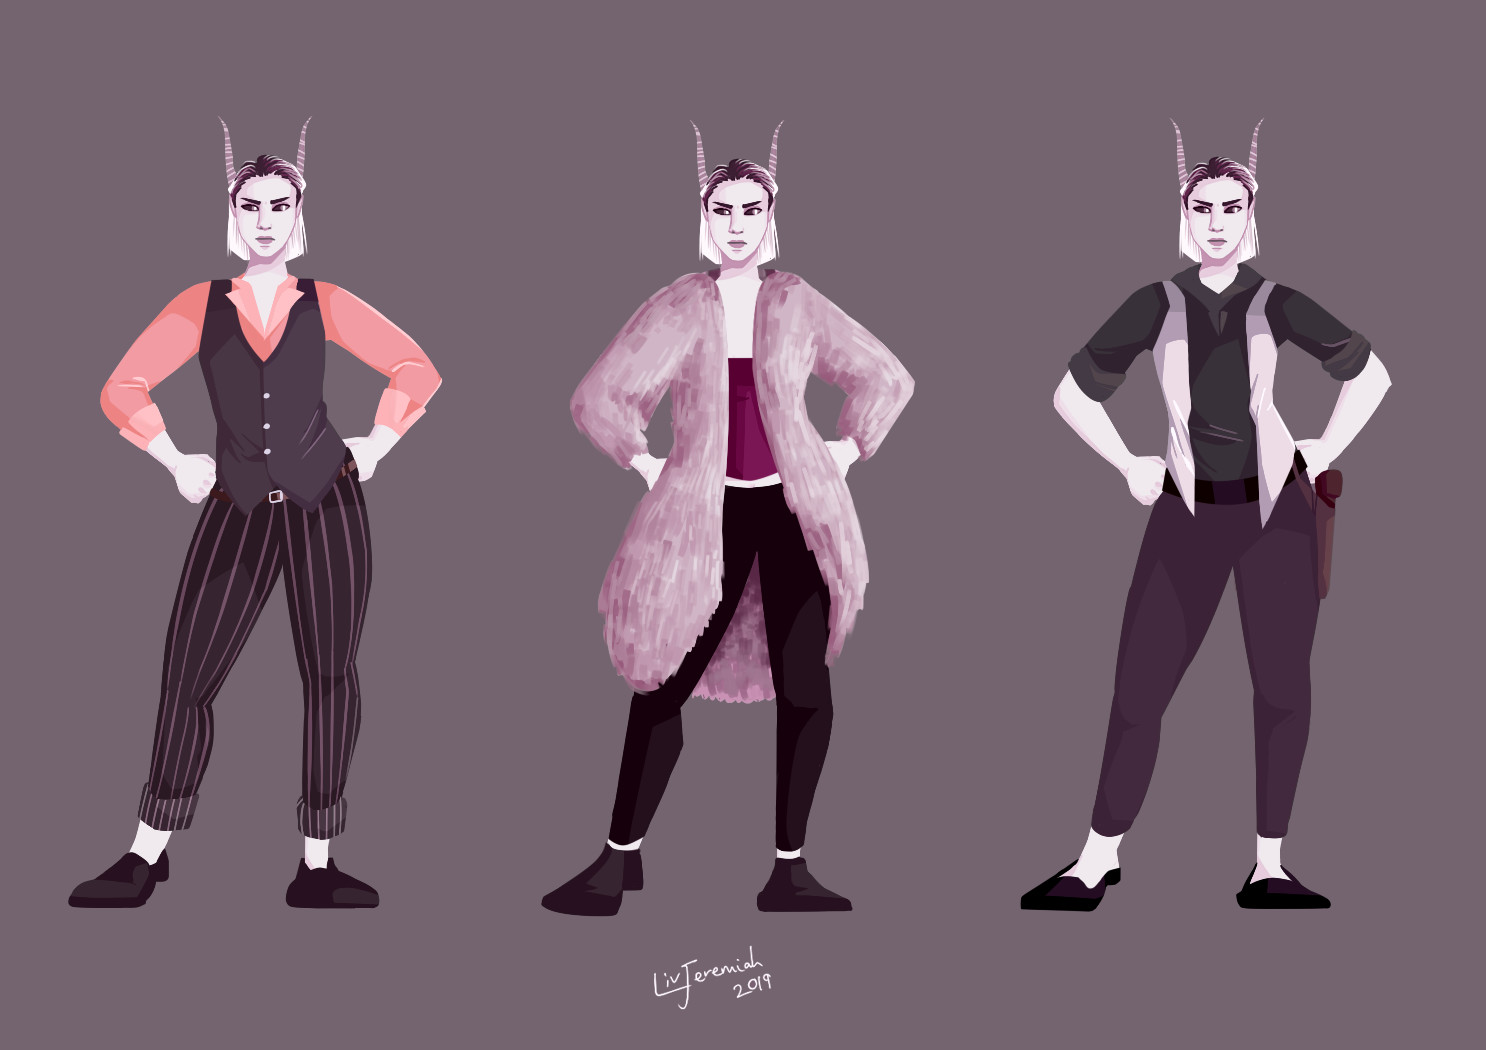 Lisette - Concept outfits